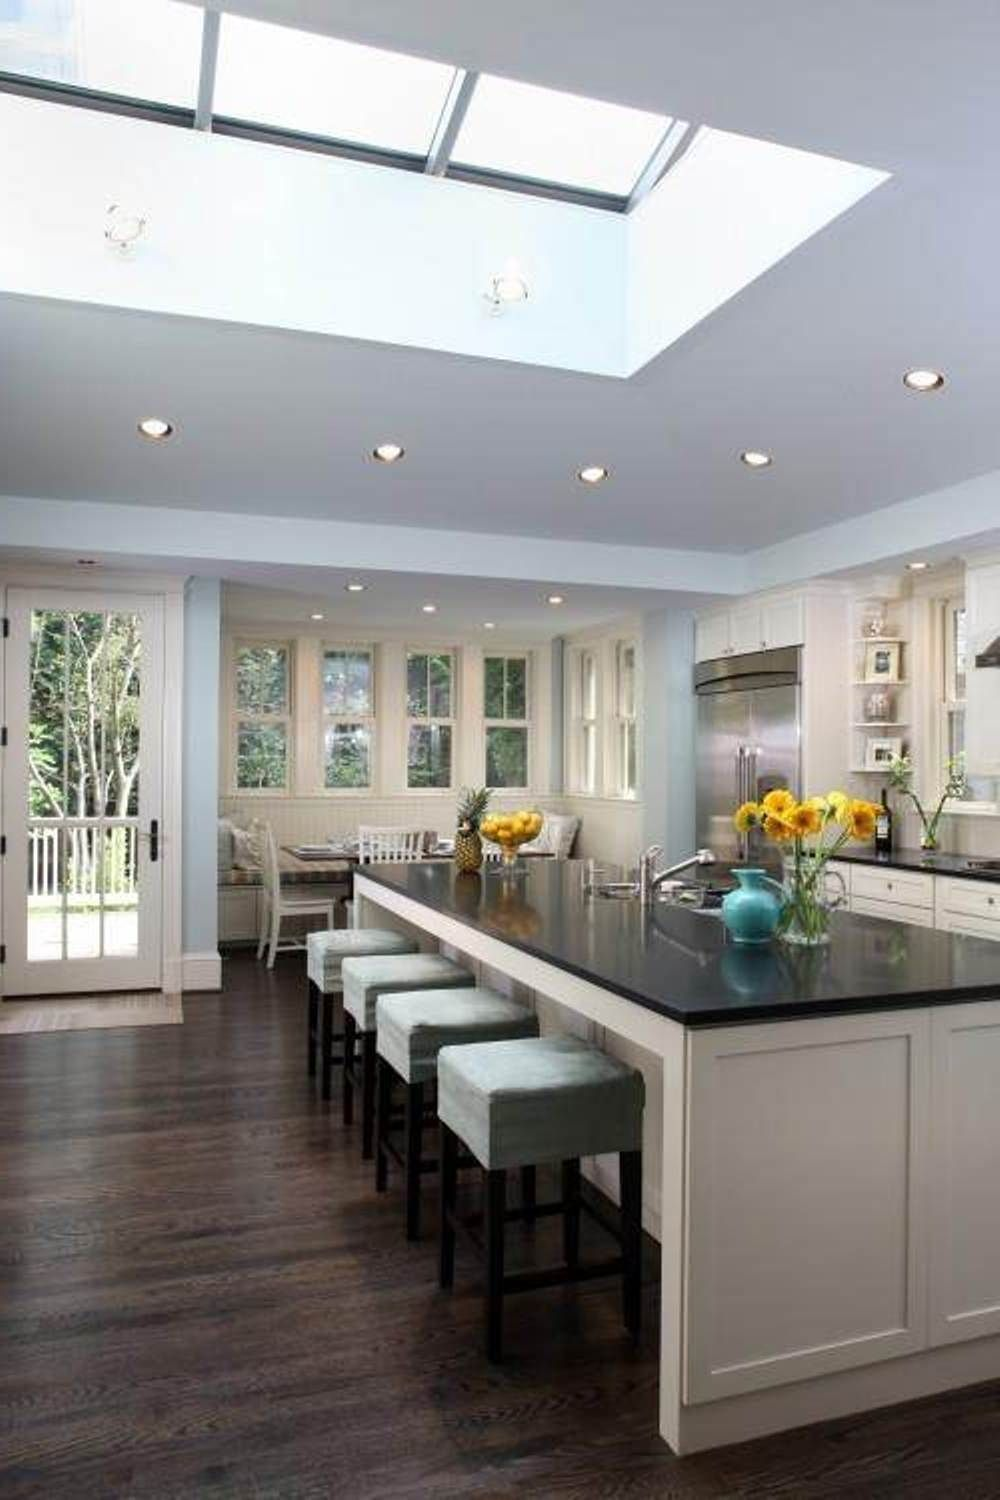 Awesome Open Kitchen Floor Plans : Open Kitchen Floor Plans for Classy Kitchen Gallery | DesignArtHouse.com - Home Art, Design, Ideas and Photos